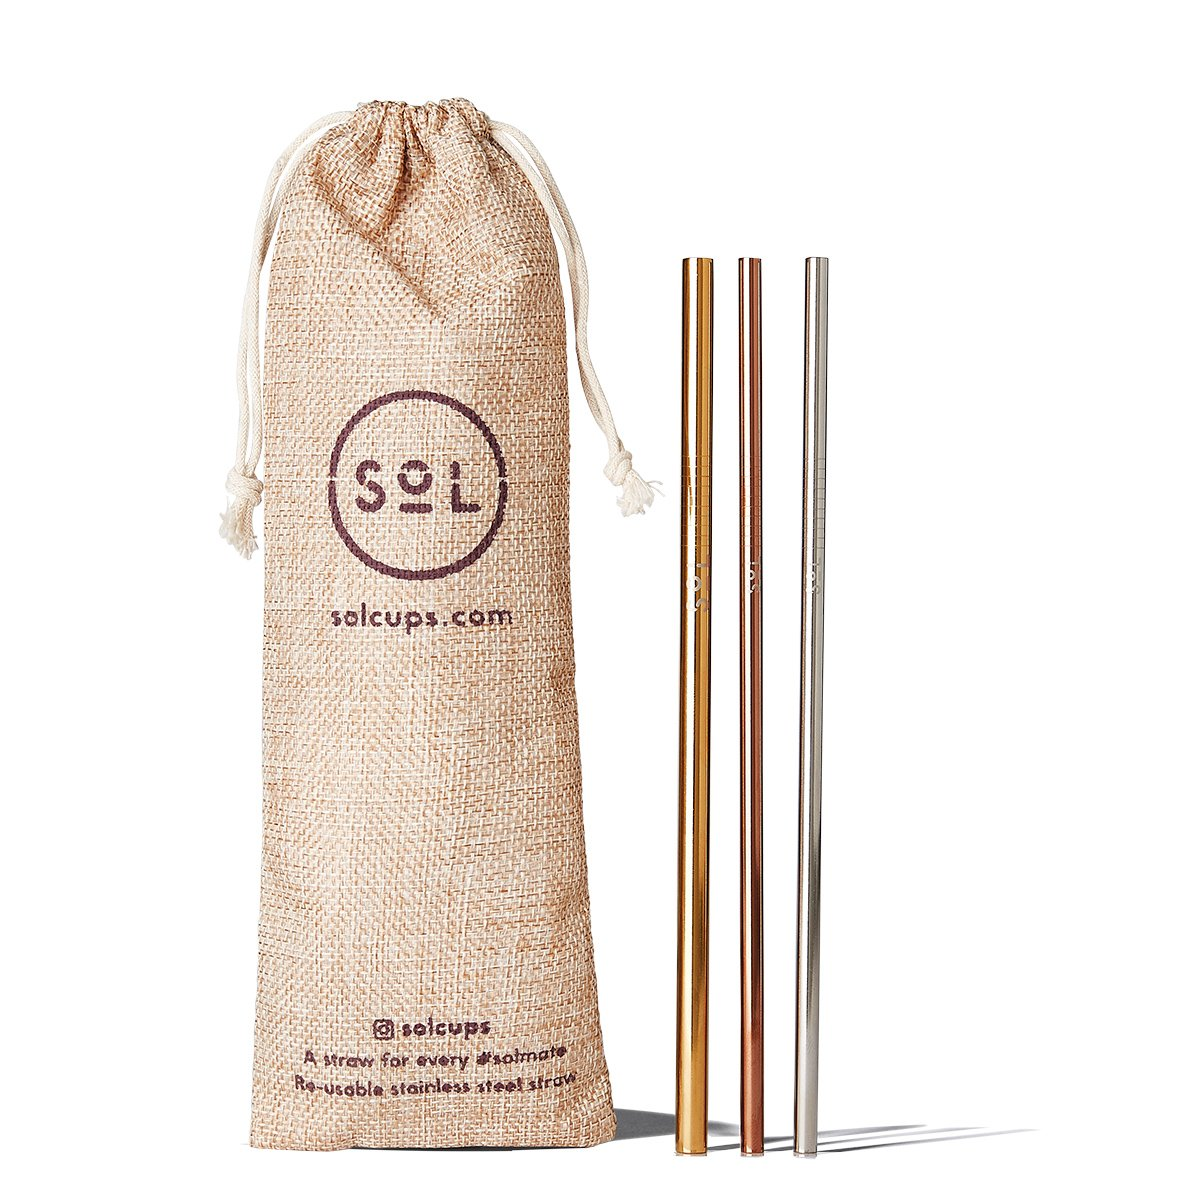 SoL Cups Stainless Steel Straw Kit from One Less Eco Living Co.